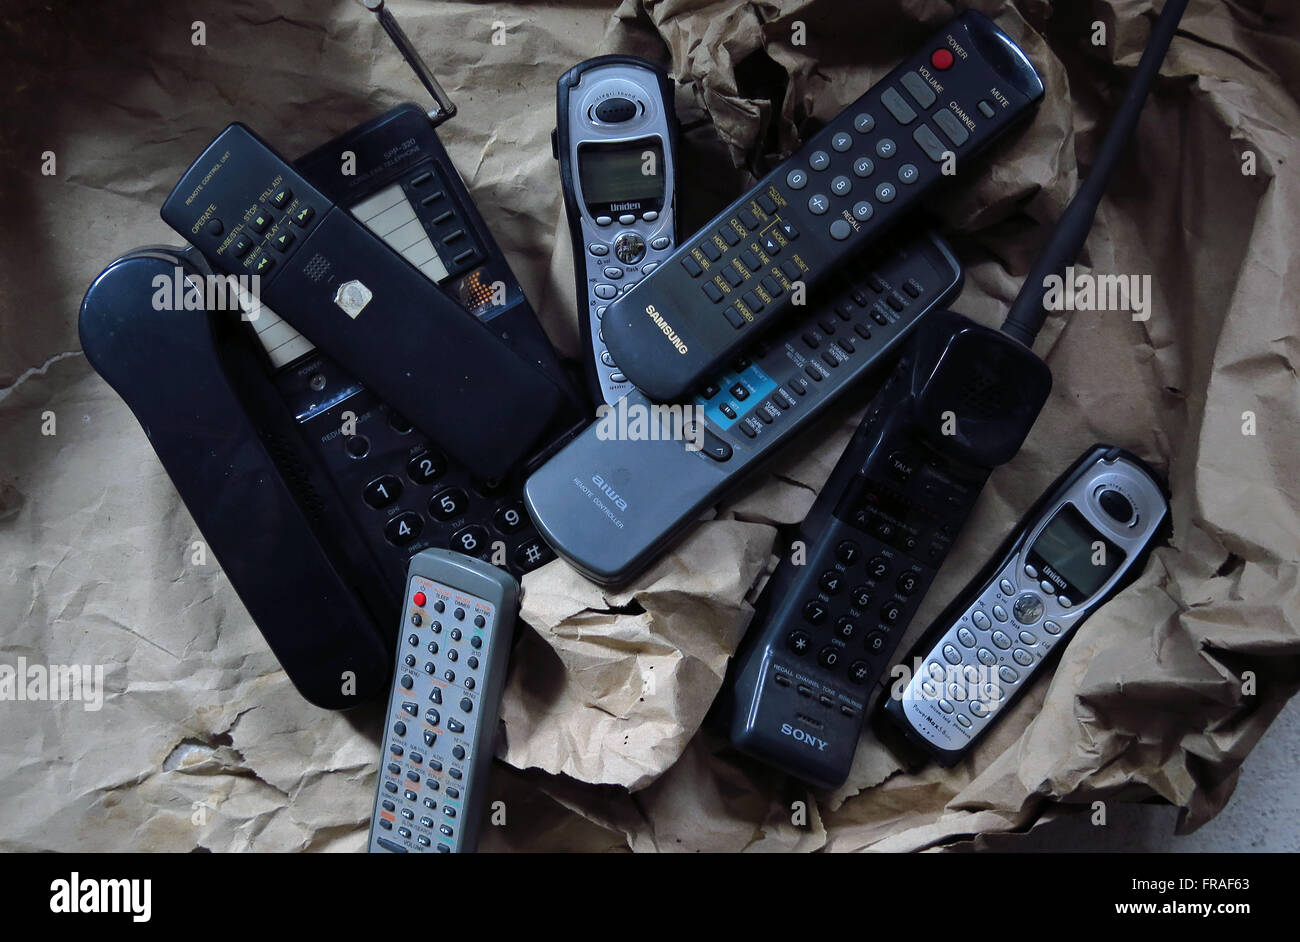 Telephone devices and old remotes - Stock Image